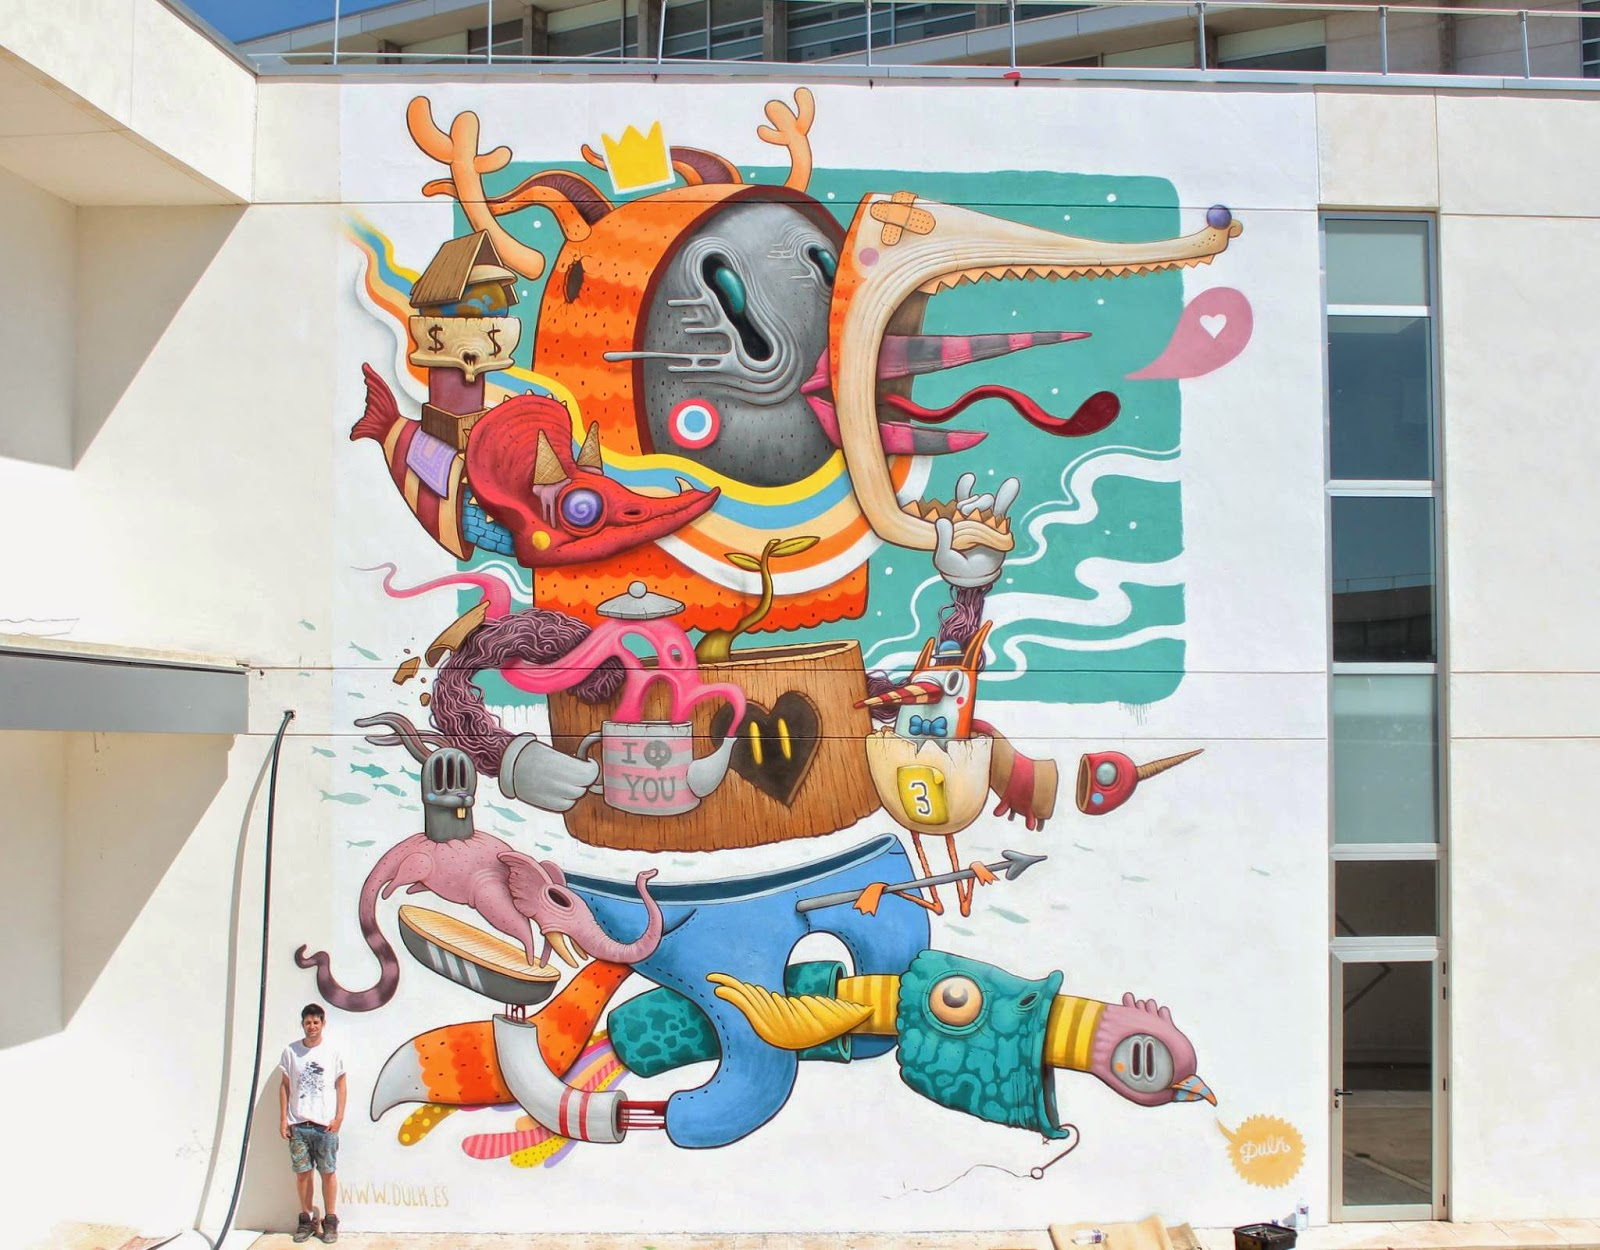 Antonio Segura Donat aka Dulk recently stopped by Valencia in Spain to attend the 2014th edition of the always excellent Poliniza Street Art Festival.